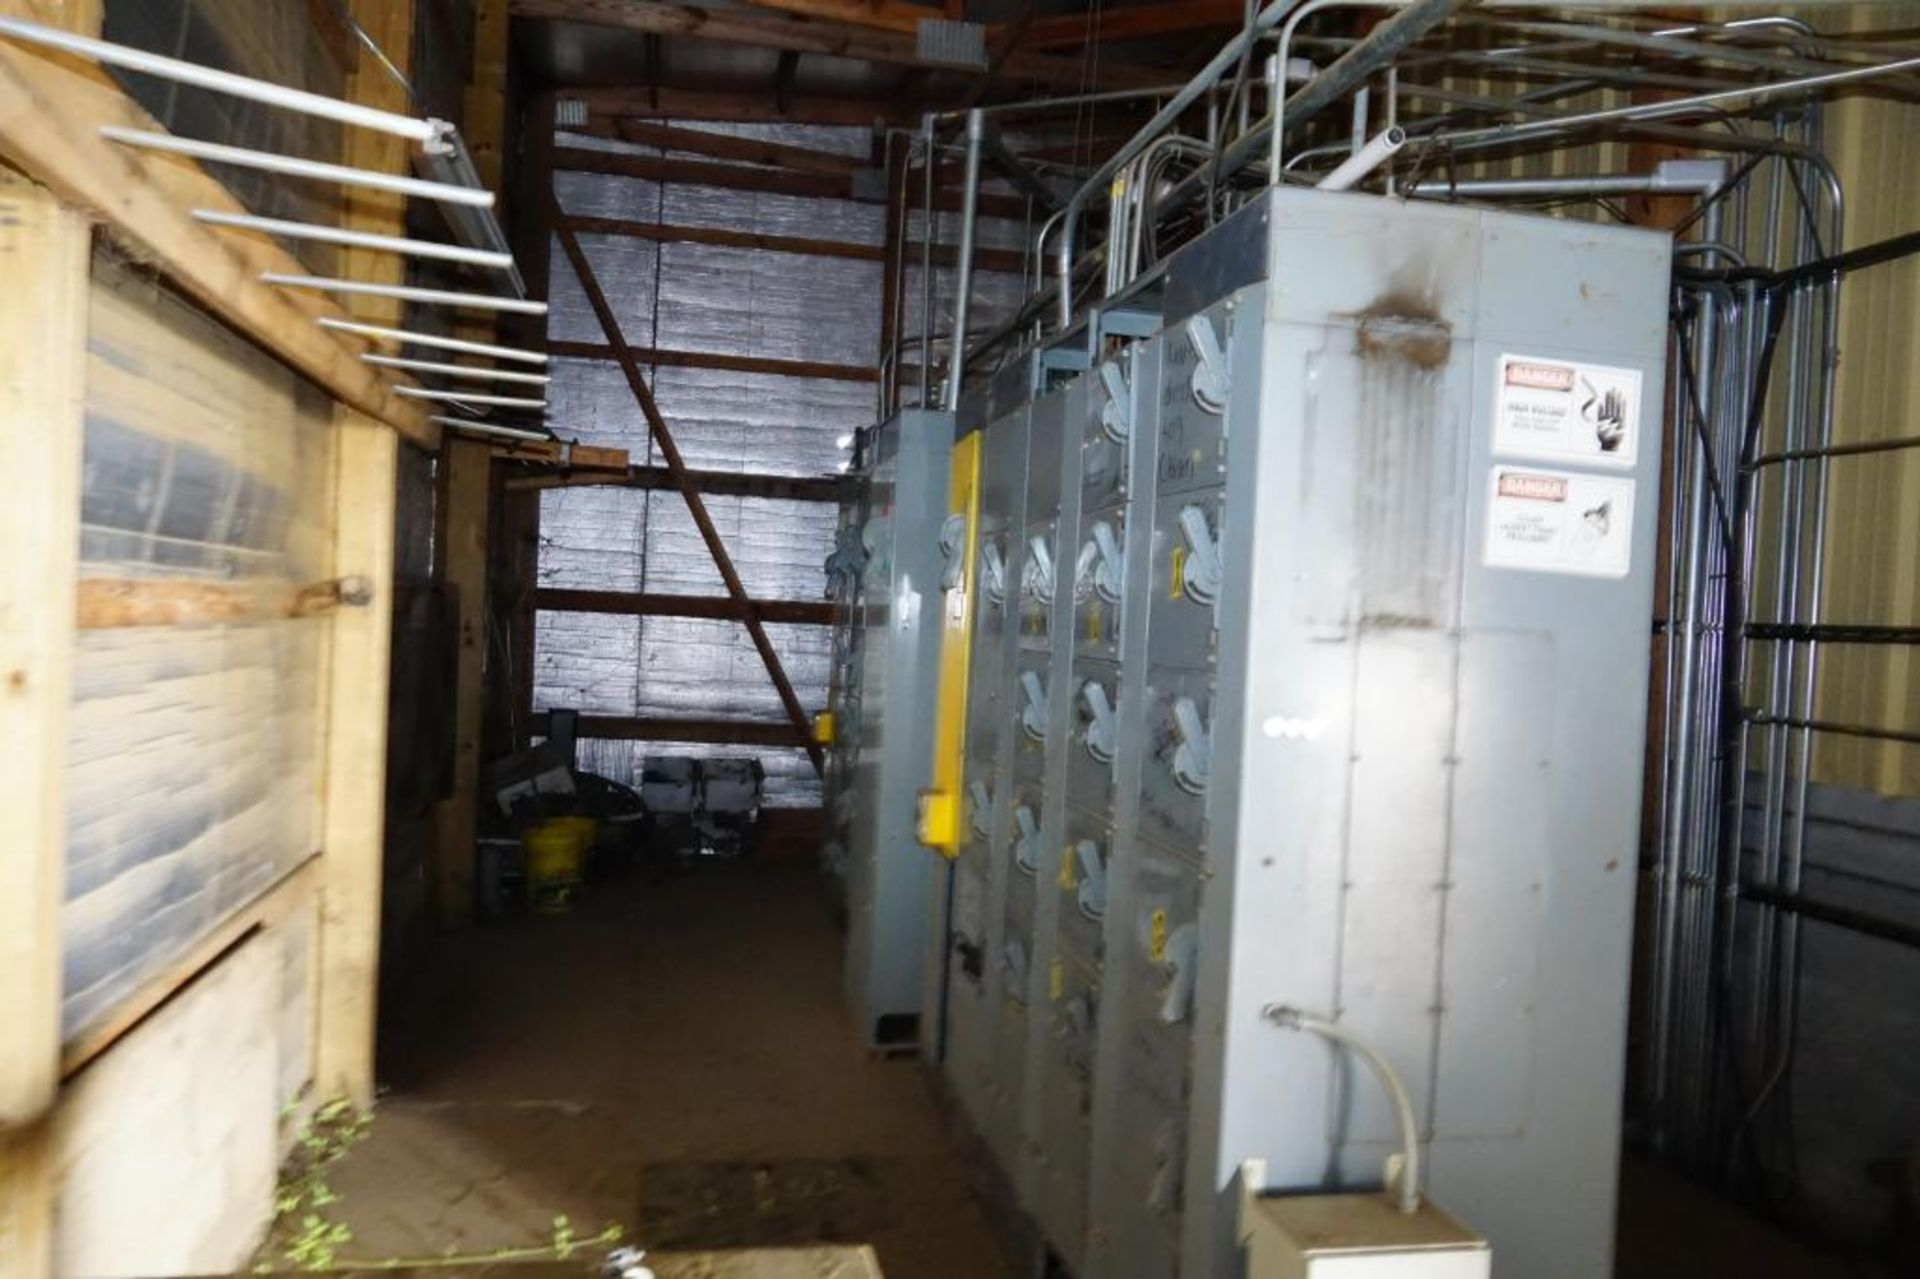 Electrical - Image 2 of 4